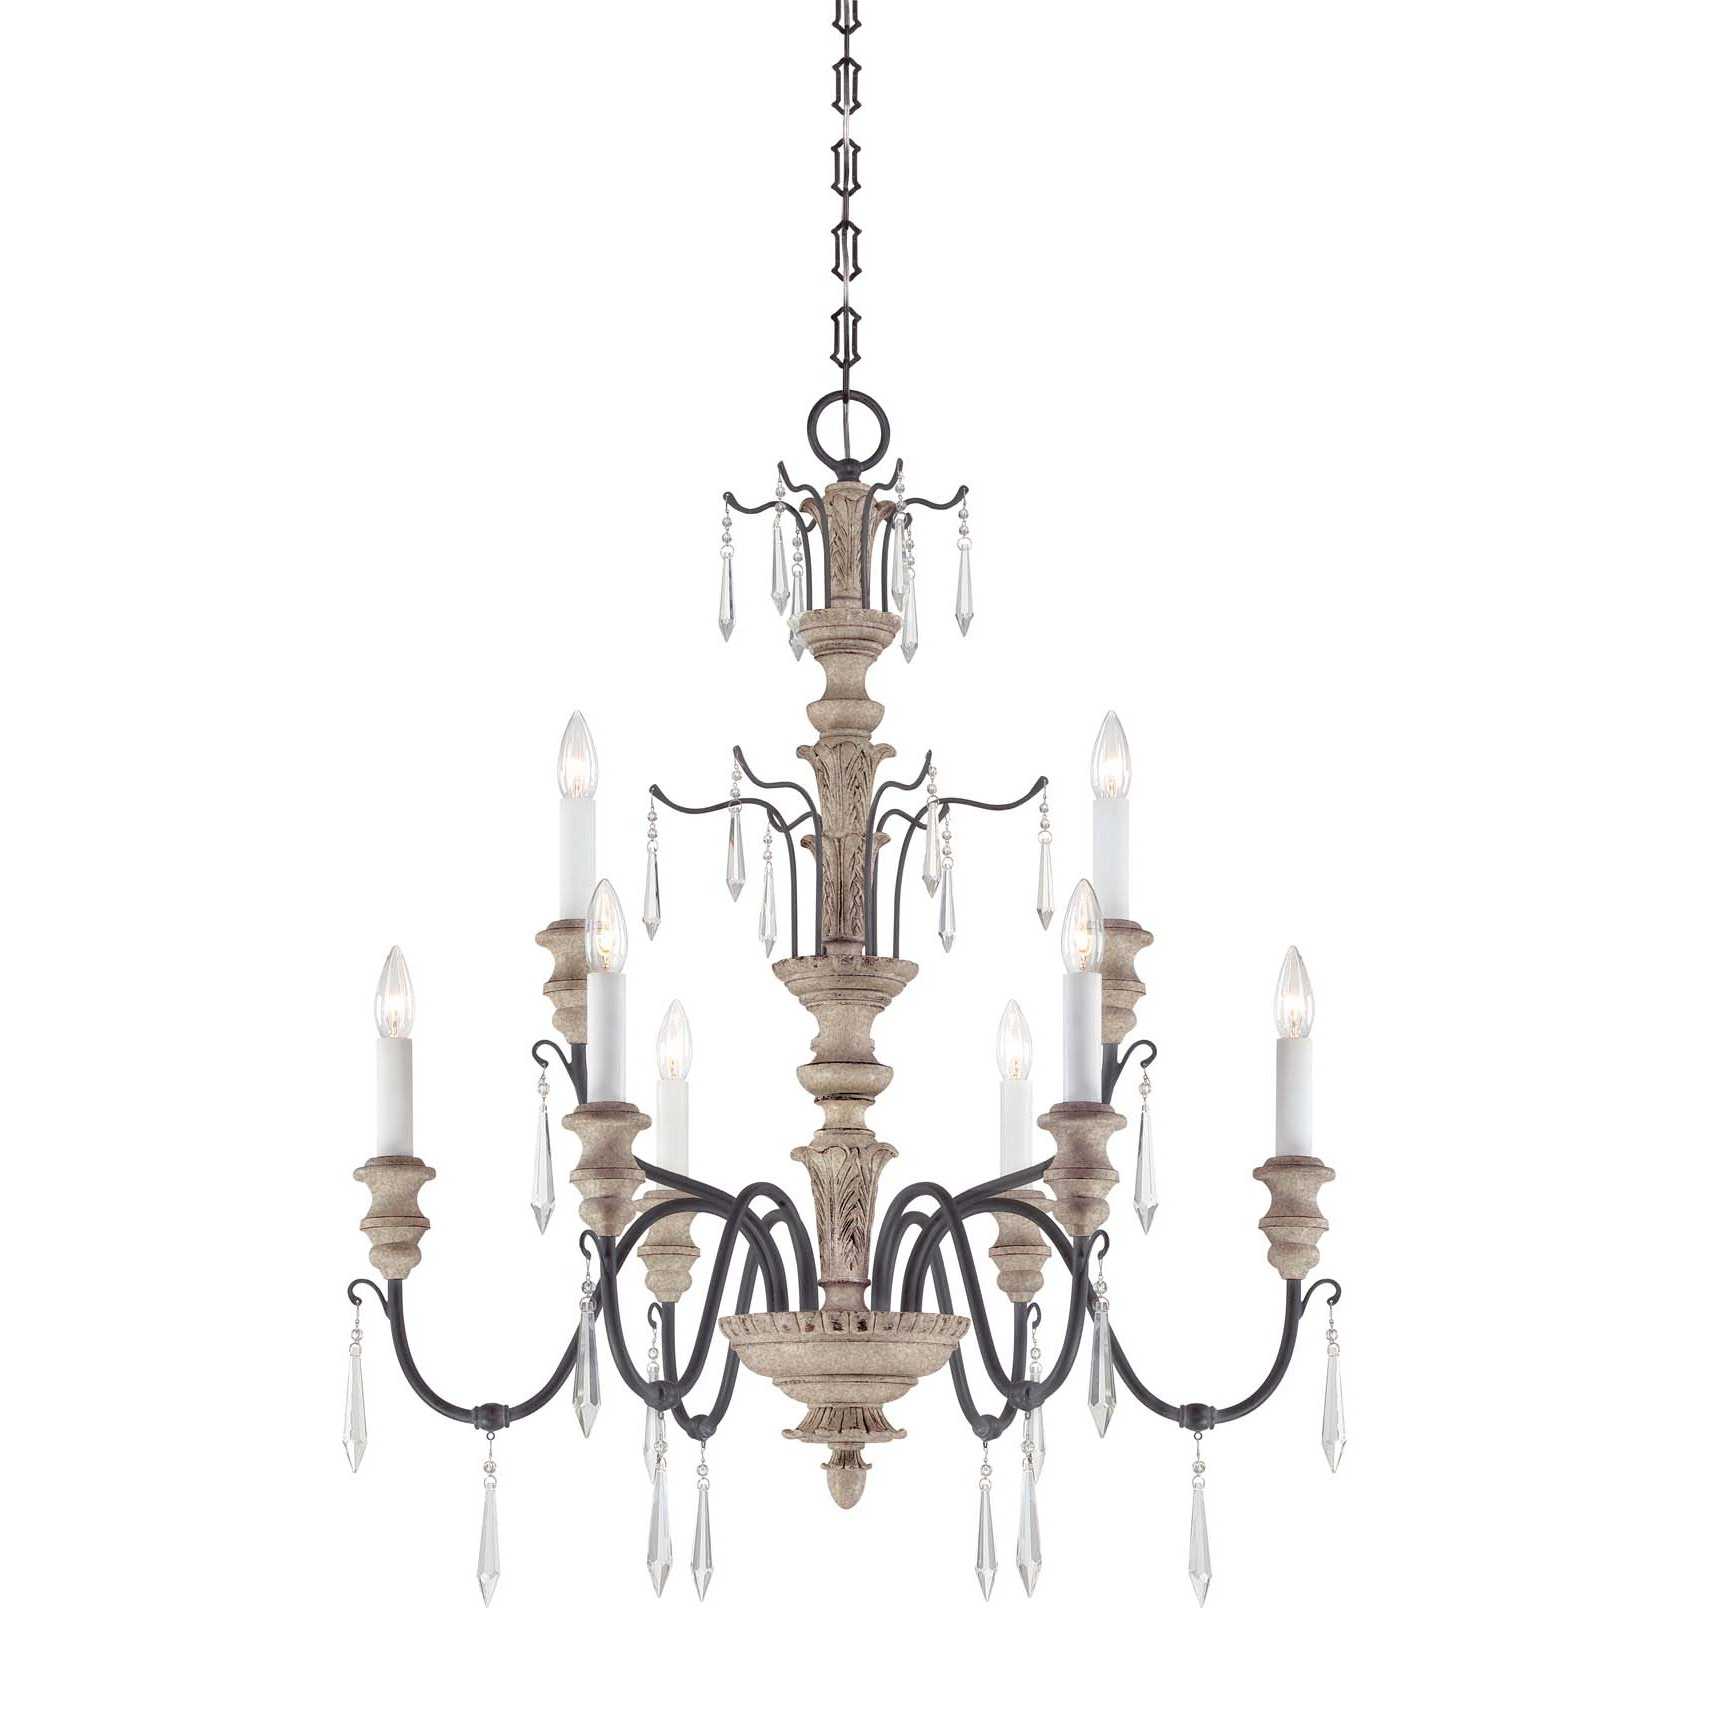 Trendy Senoia Candle Style Chandelier Within Watford 9 Light Candle Style Chandeliers (View 15 of 25)